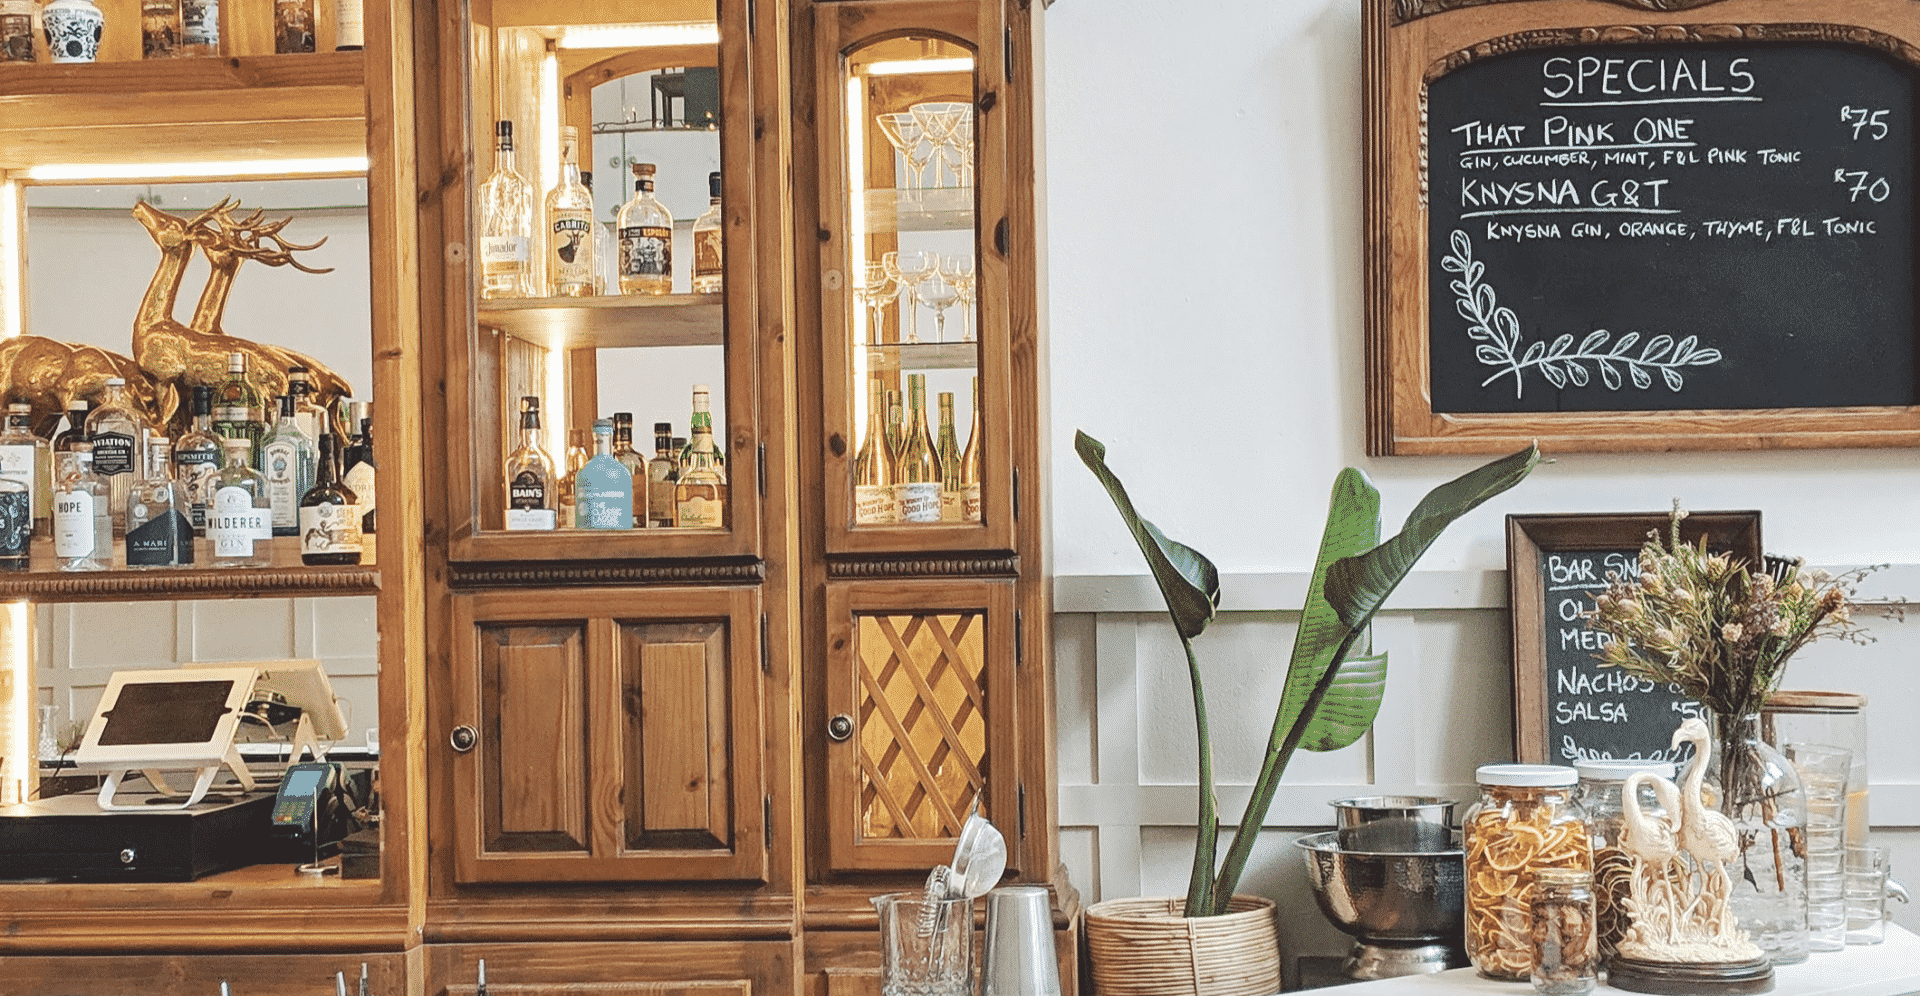 The Gin Bar in Cape Town